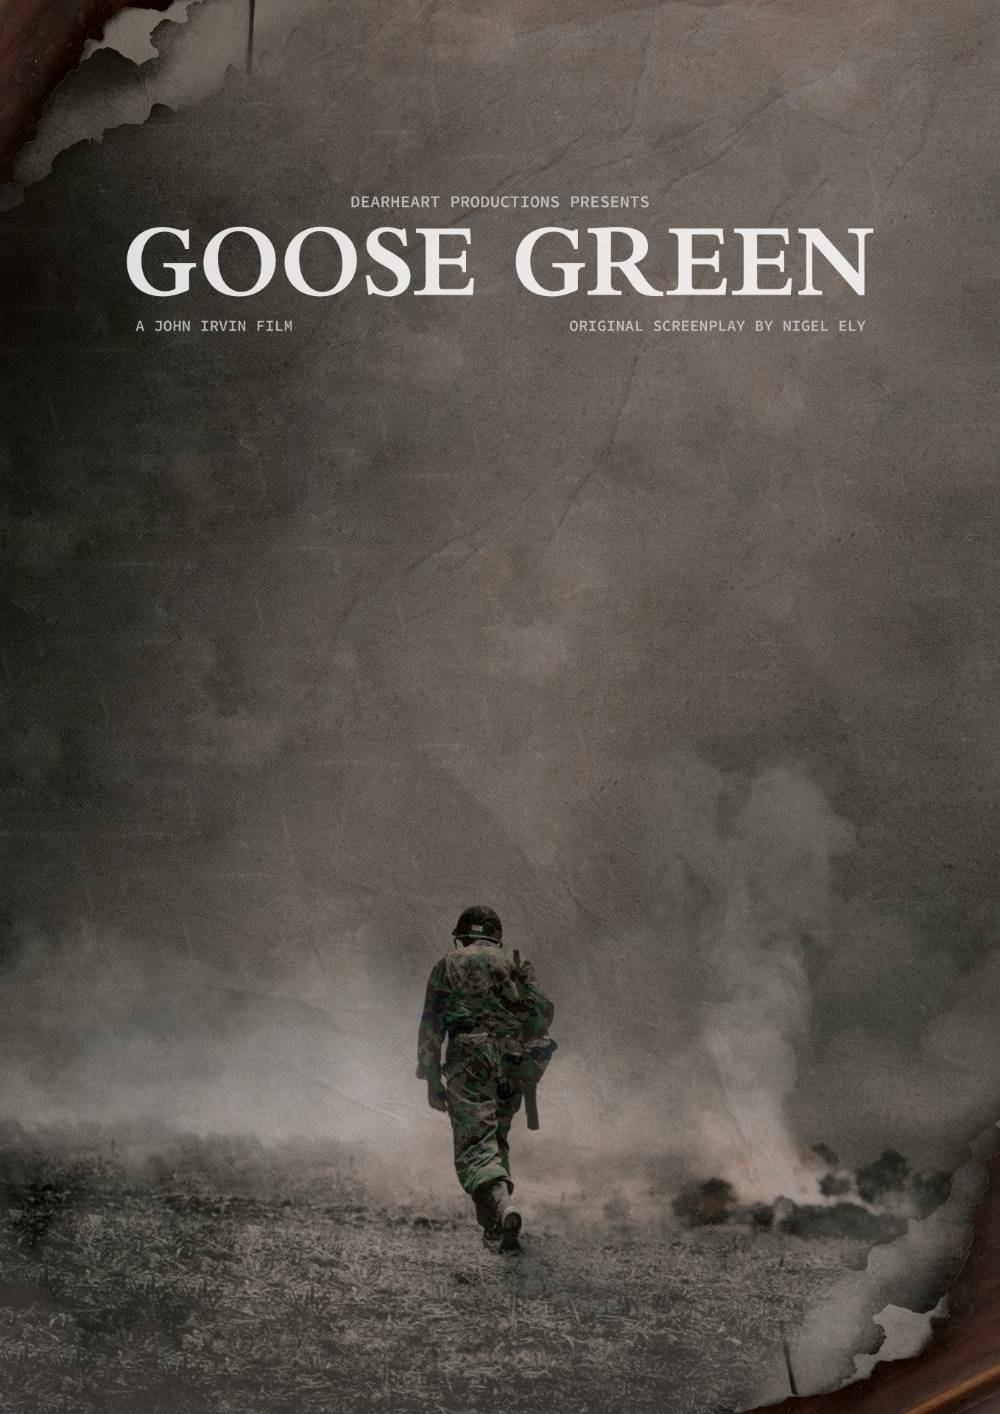 goose green peacock film finance